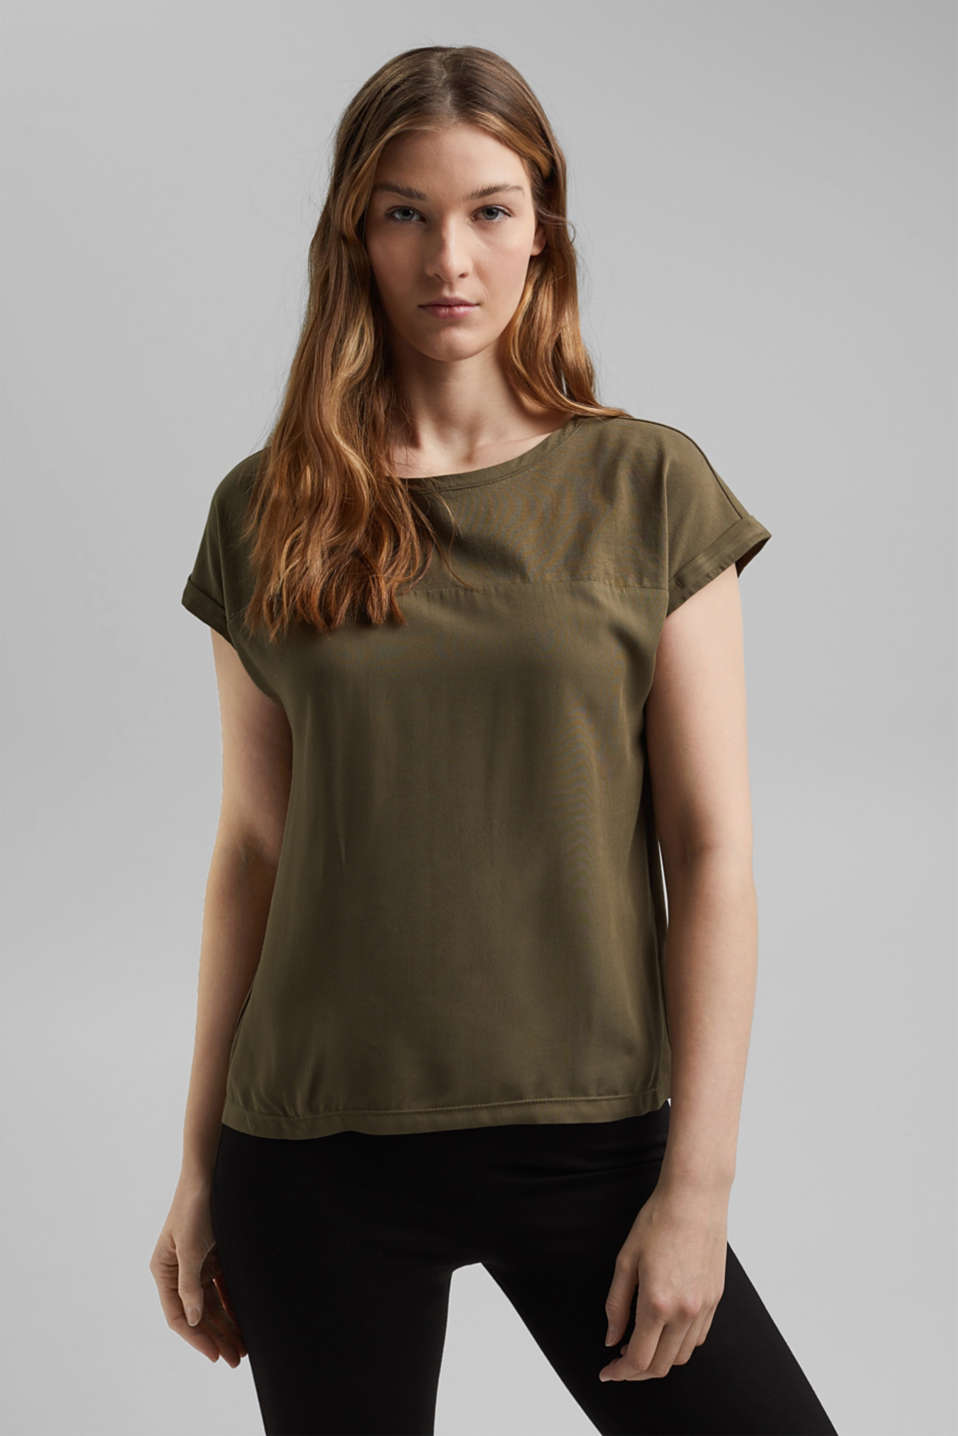 edc - T-shirt with organic cotton and viscose